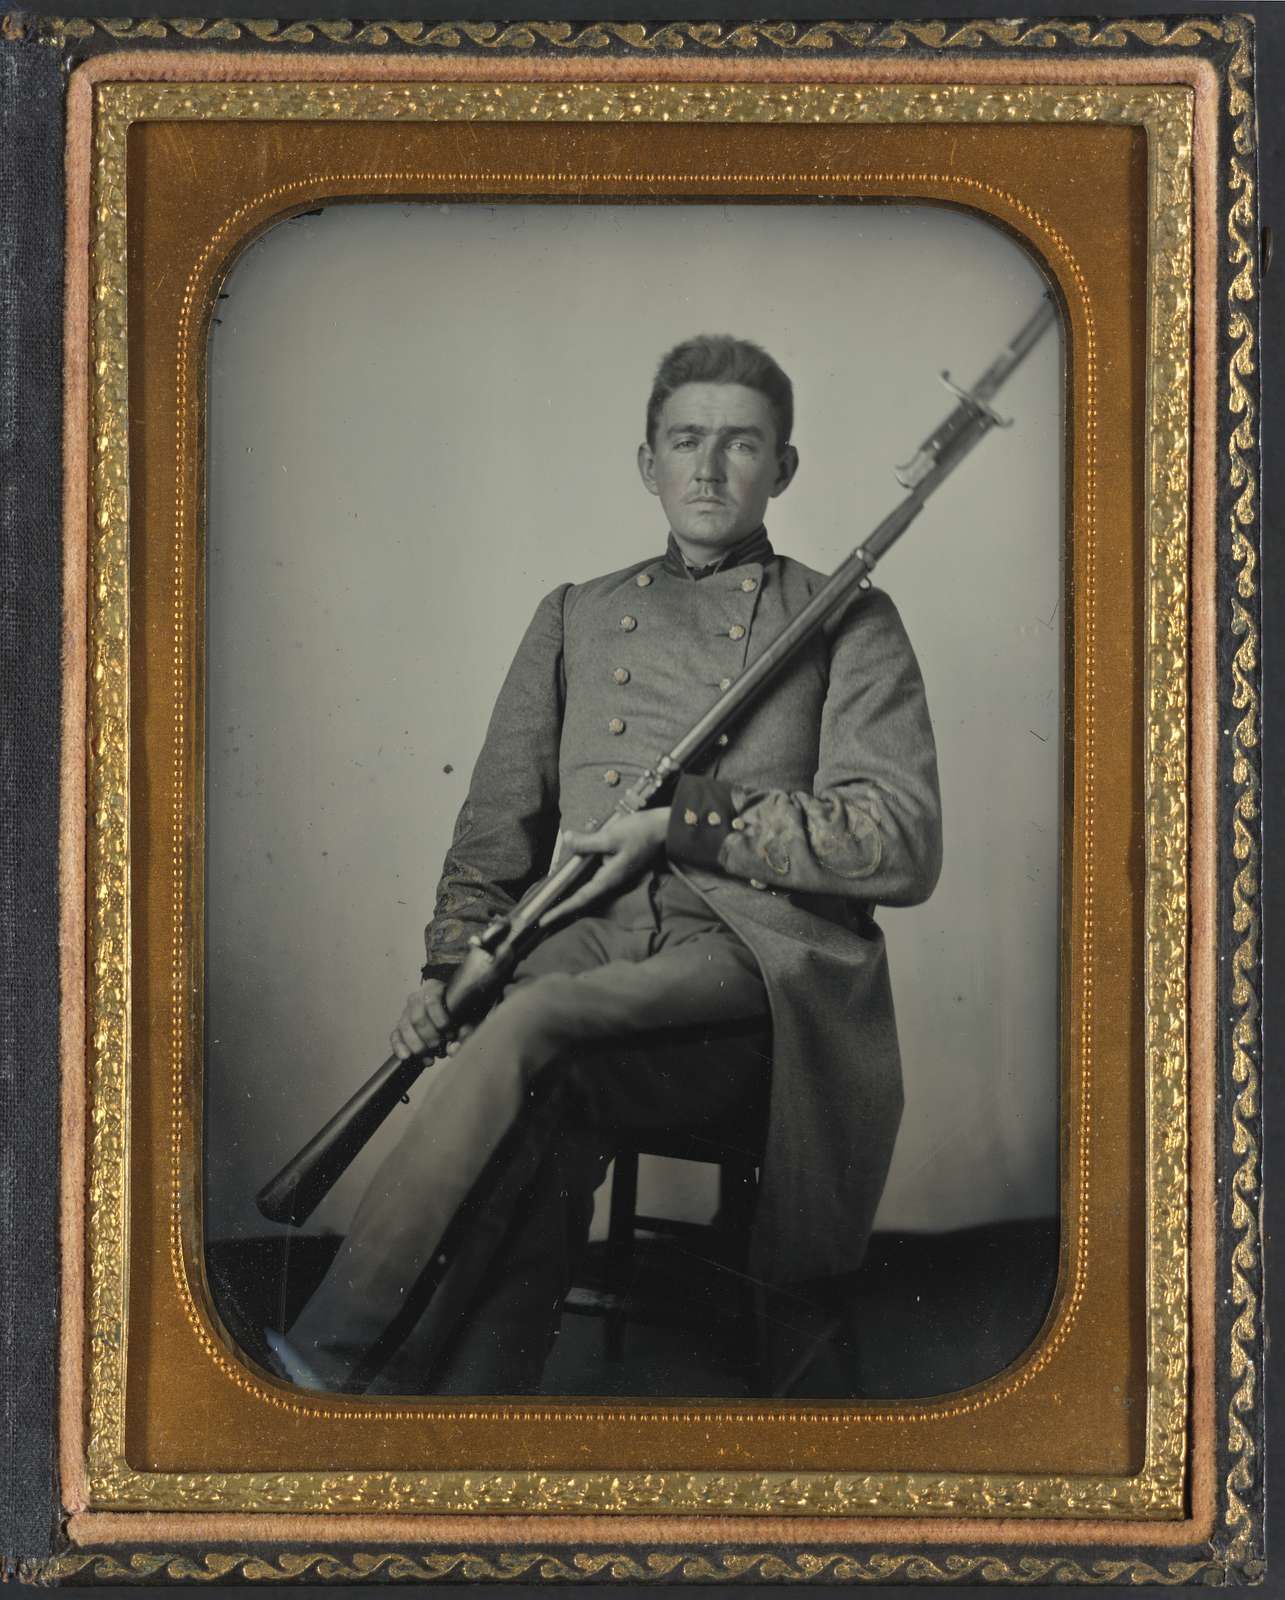 [Captain Daniel Turrentine of Company G, 12th Arkansas Infantry Regiment, in full officers' uniform with musket]